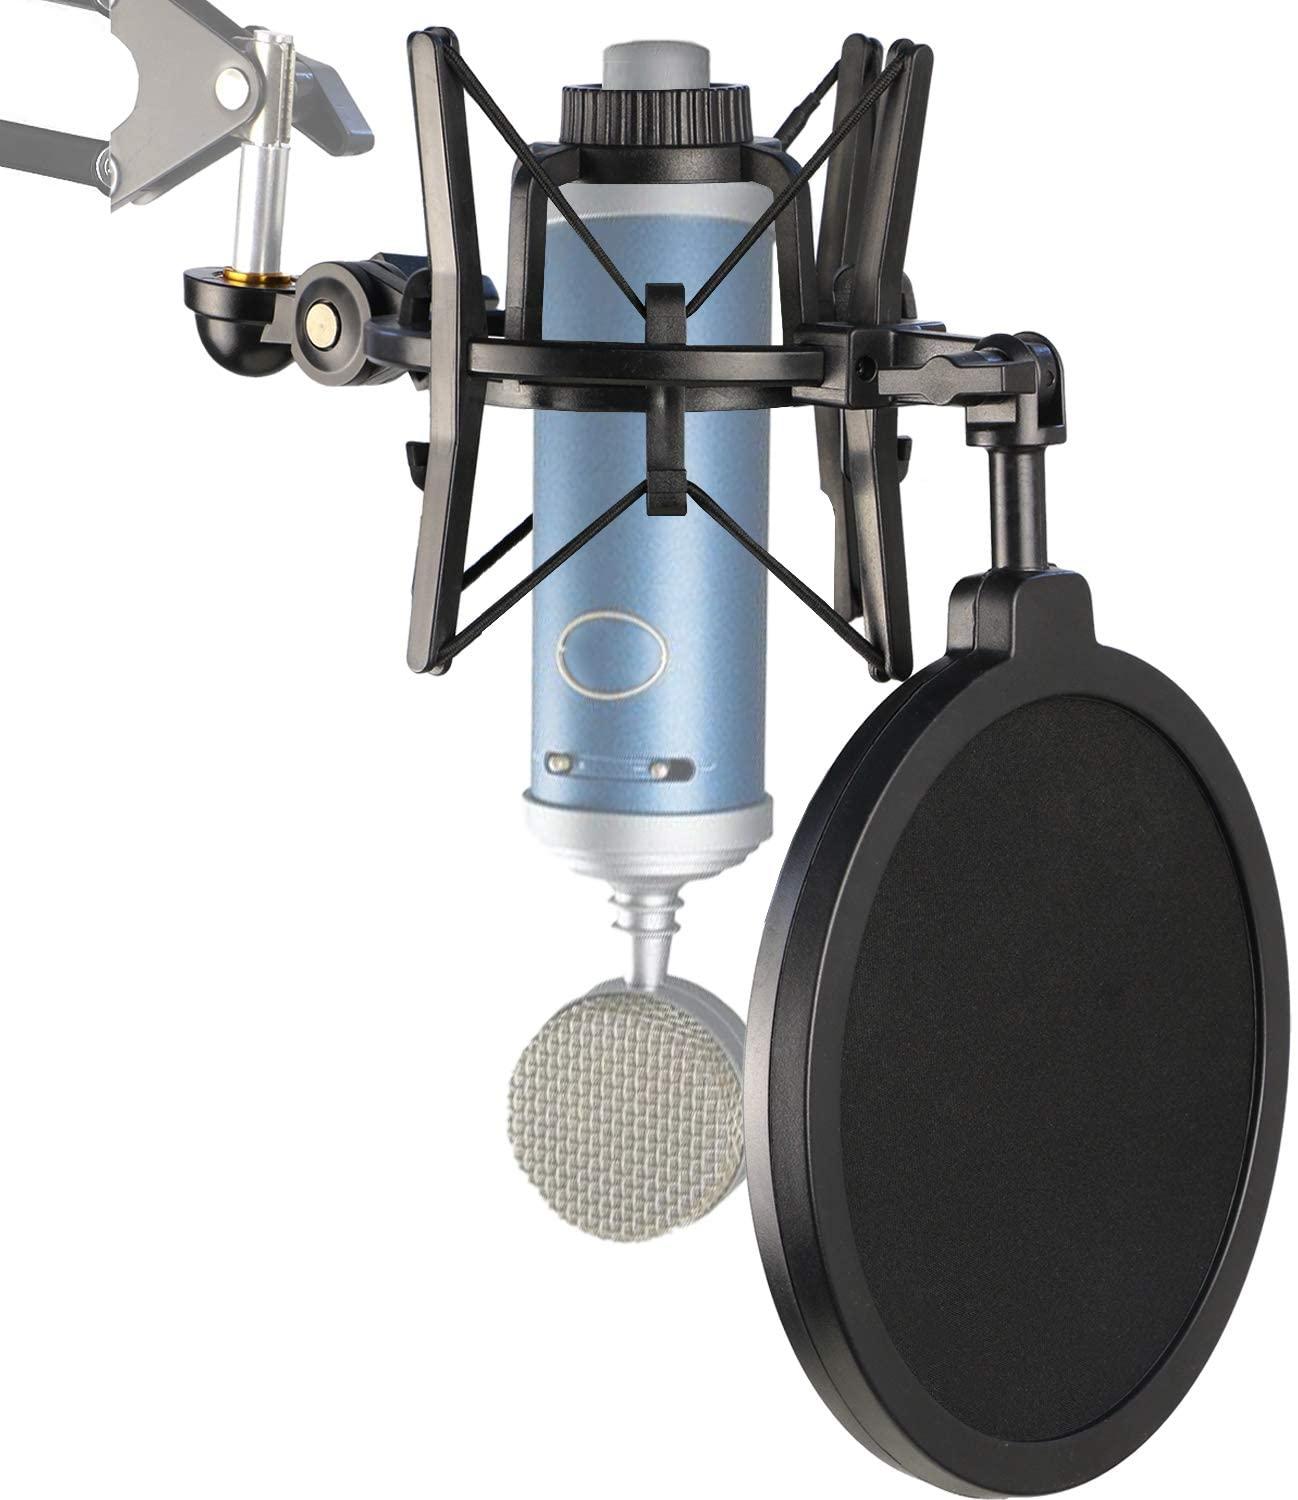 Bluebird Shock Mount with Pop Filter, Windscreen and Shockmount to Reduce Vibration Noise Matching Mic Boom Arm for Bluebird SL Microphone by YOUSHARES